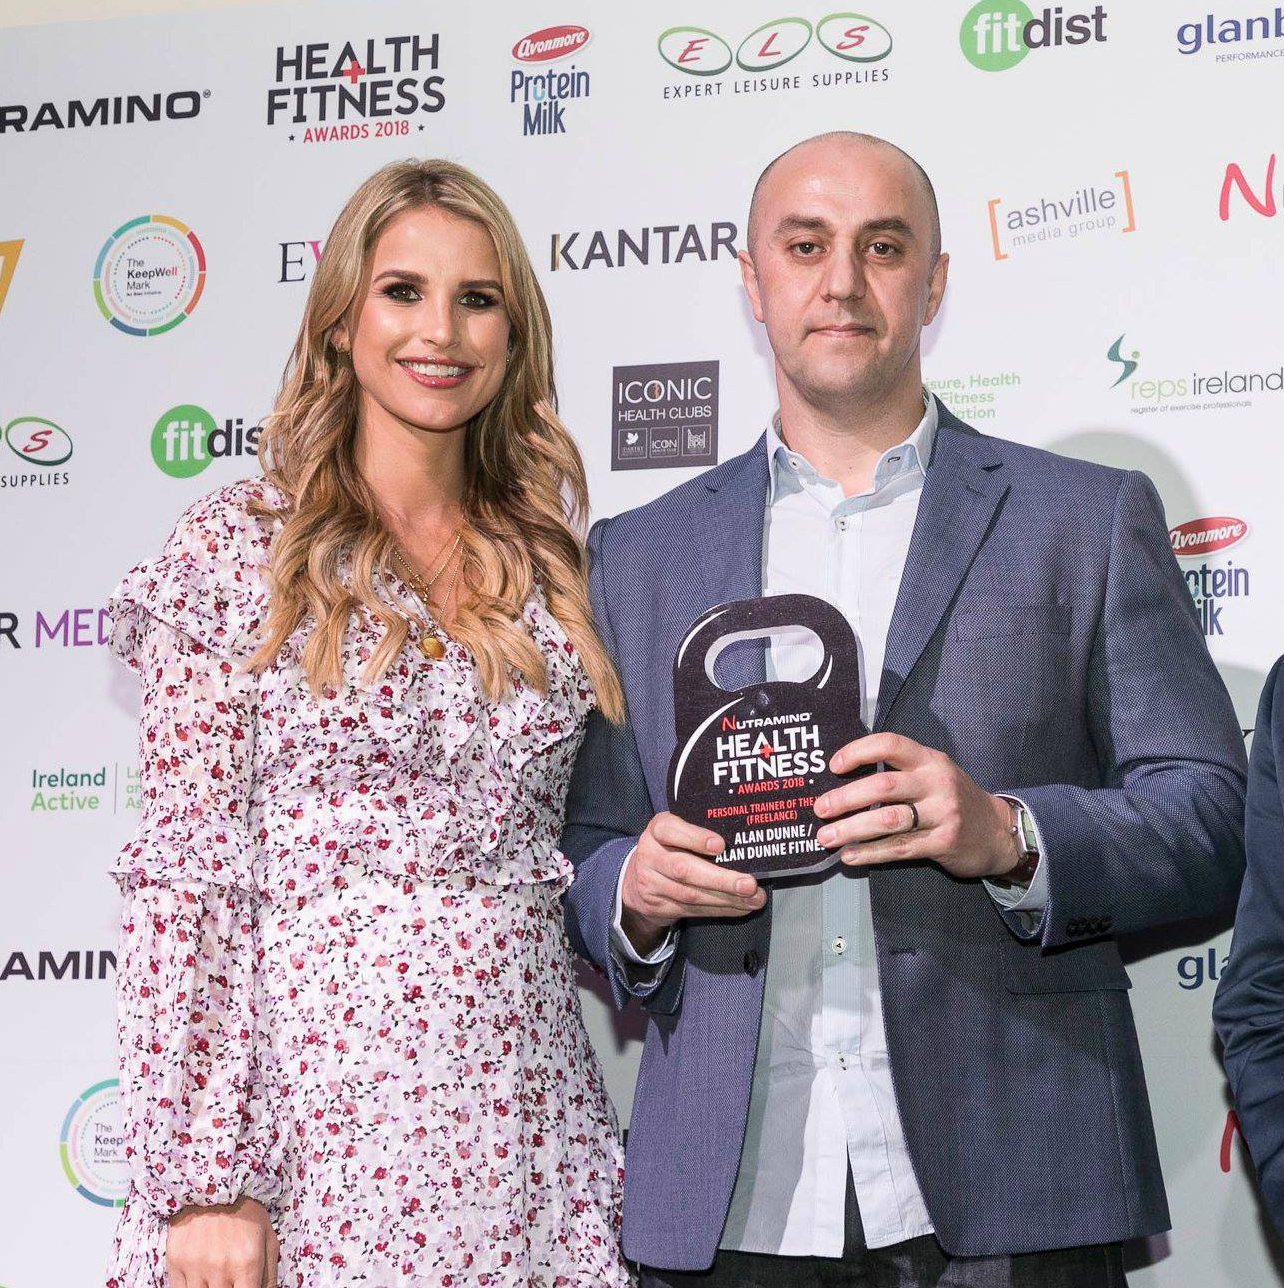 alan dunne winner of personal trainer of the year